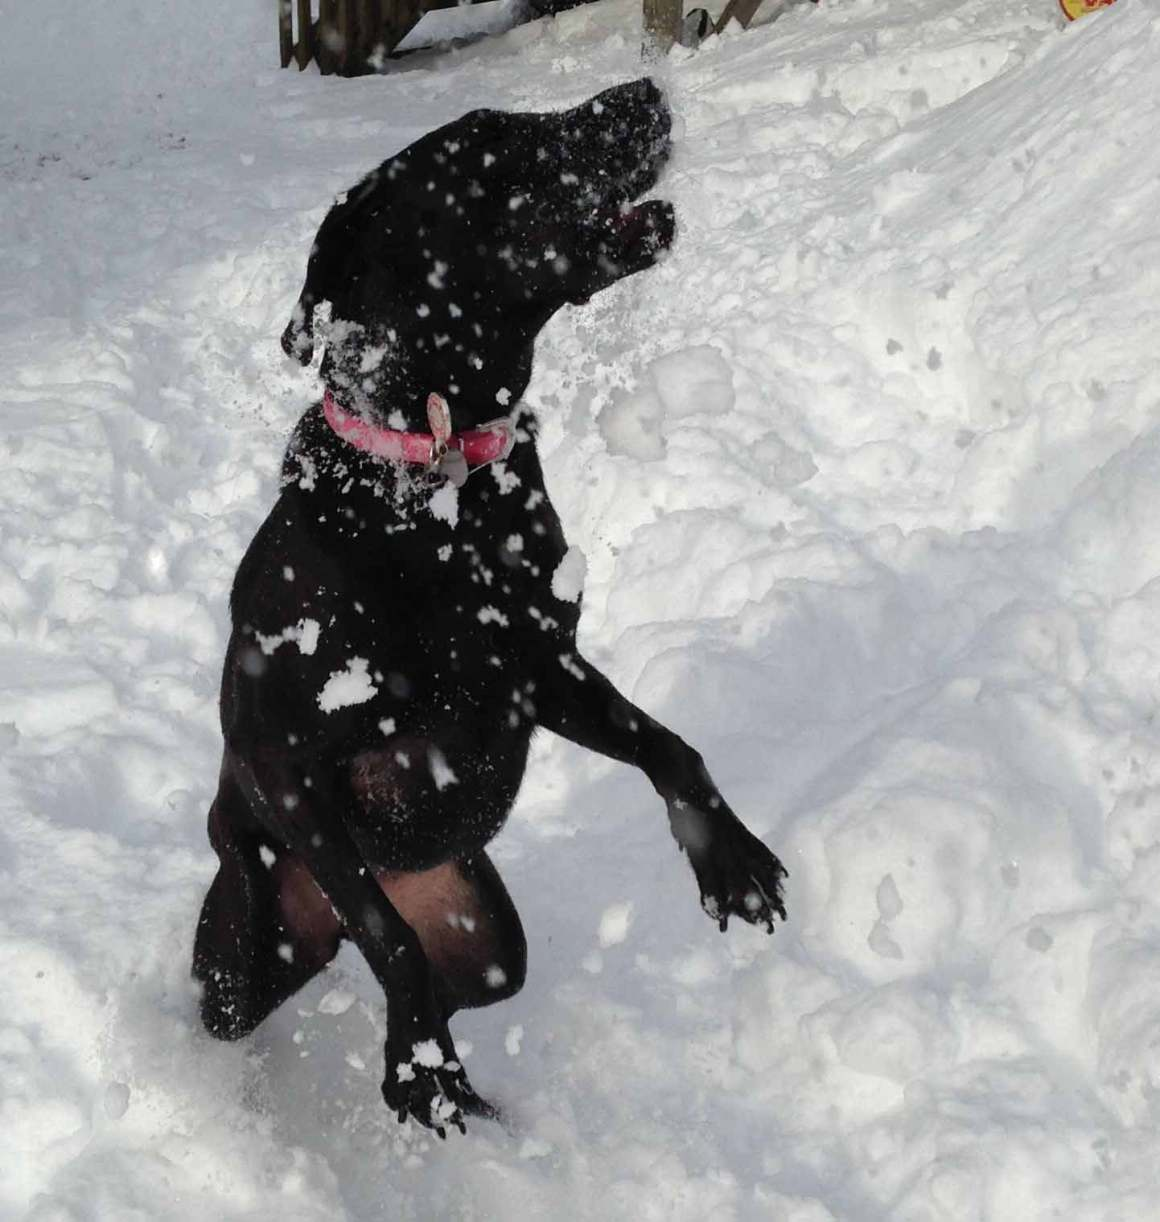 Why do dogs love snow